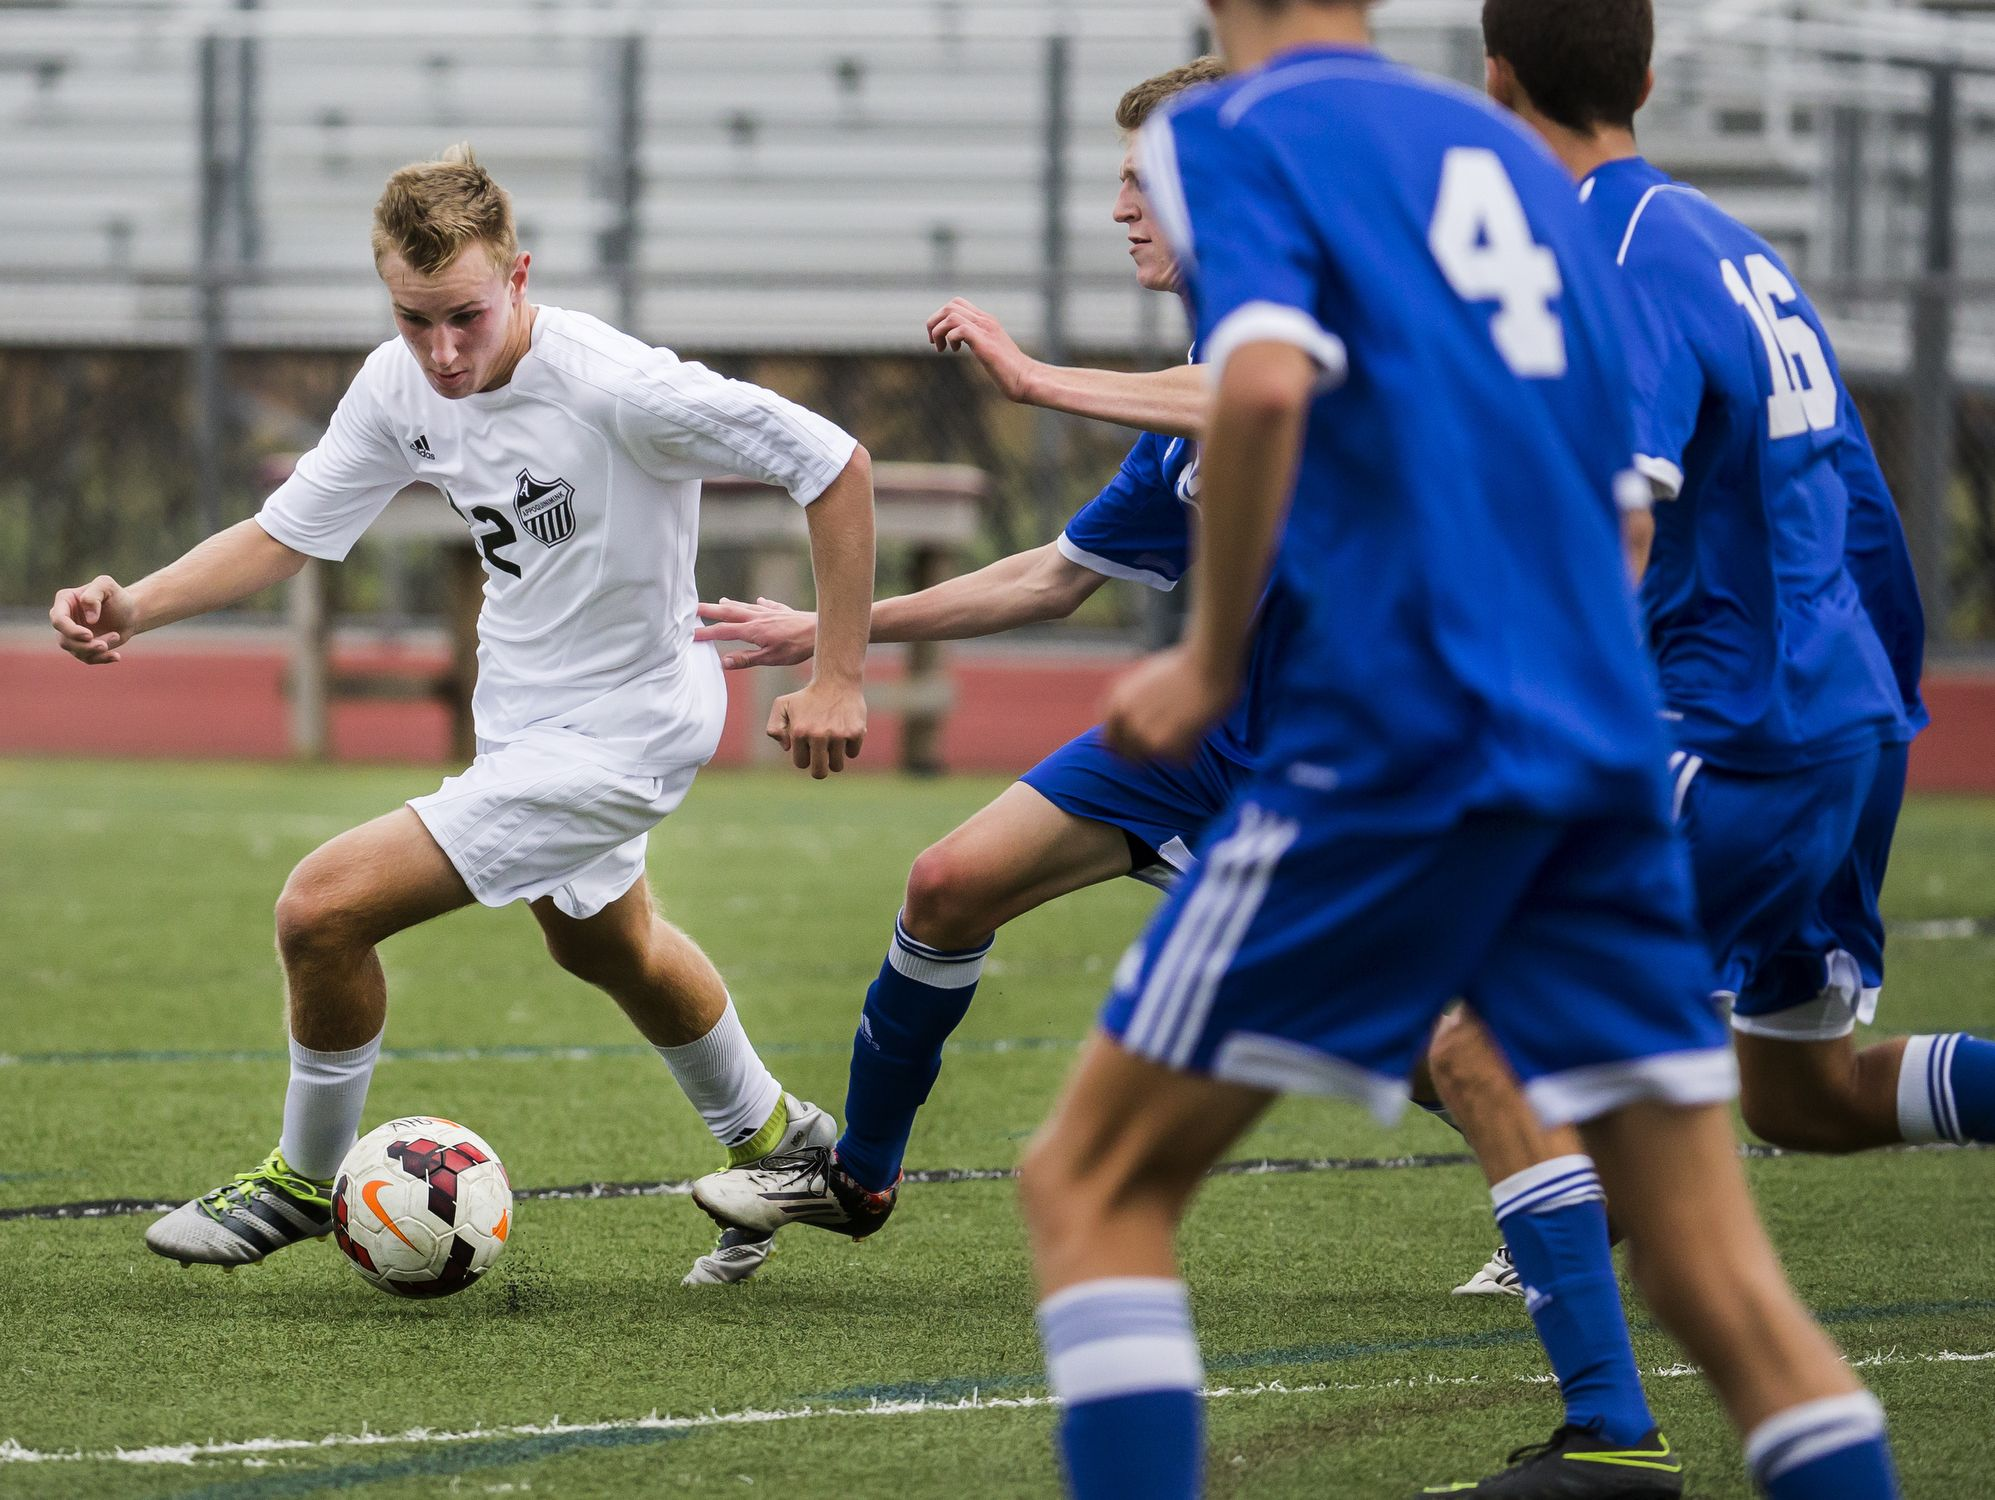 Appoquinimink's Matthew Meadows works the ball through the box as he's pursued by a group of defenders in the second half of Appoquinimink's 1-0 win over Charter School of Wilmington at Appoquinimink High School in Middletown on Tuesday afternoon.